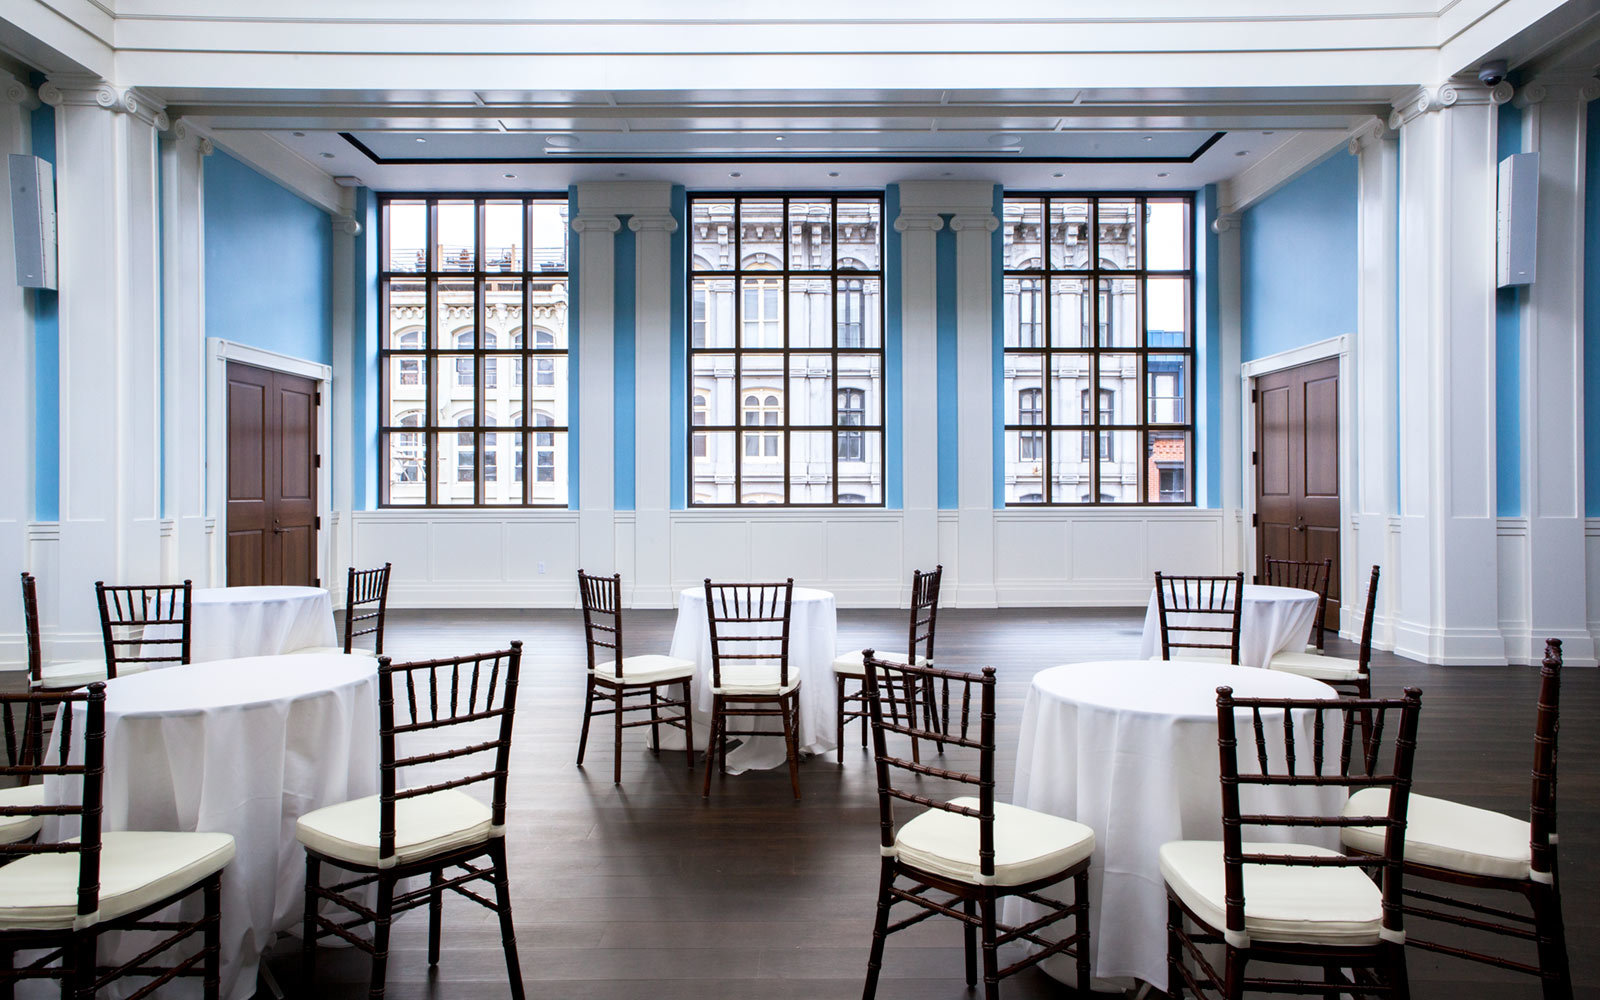 Ballroom, Museum of the American Revolution, Philadelphia, Pennsylvania